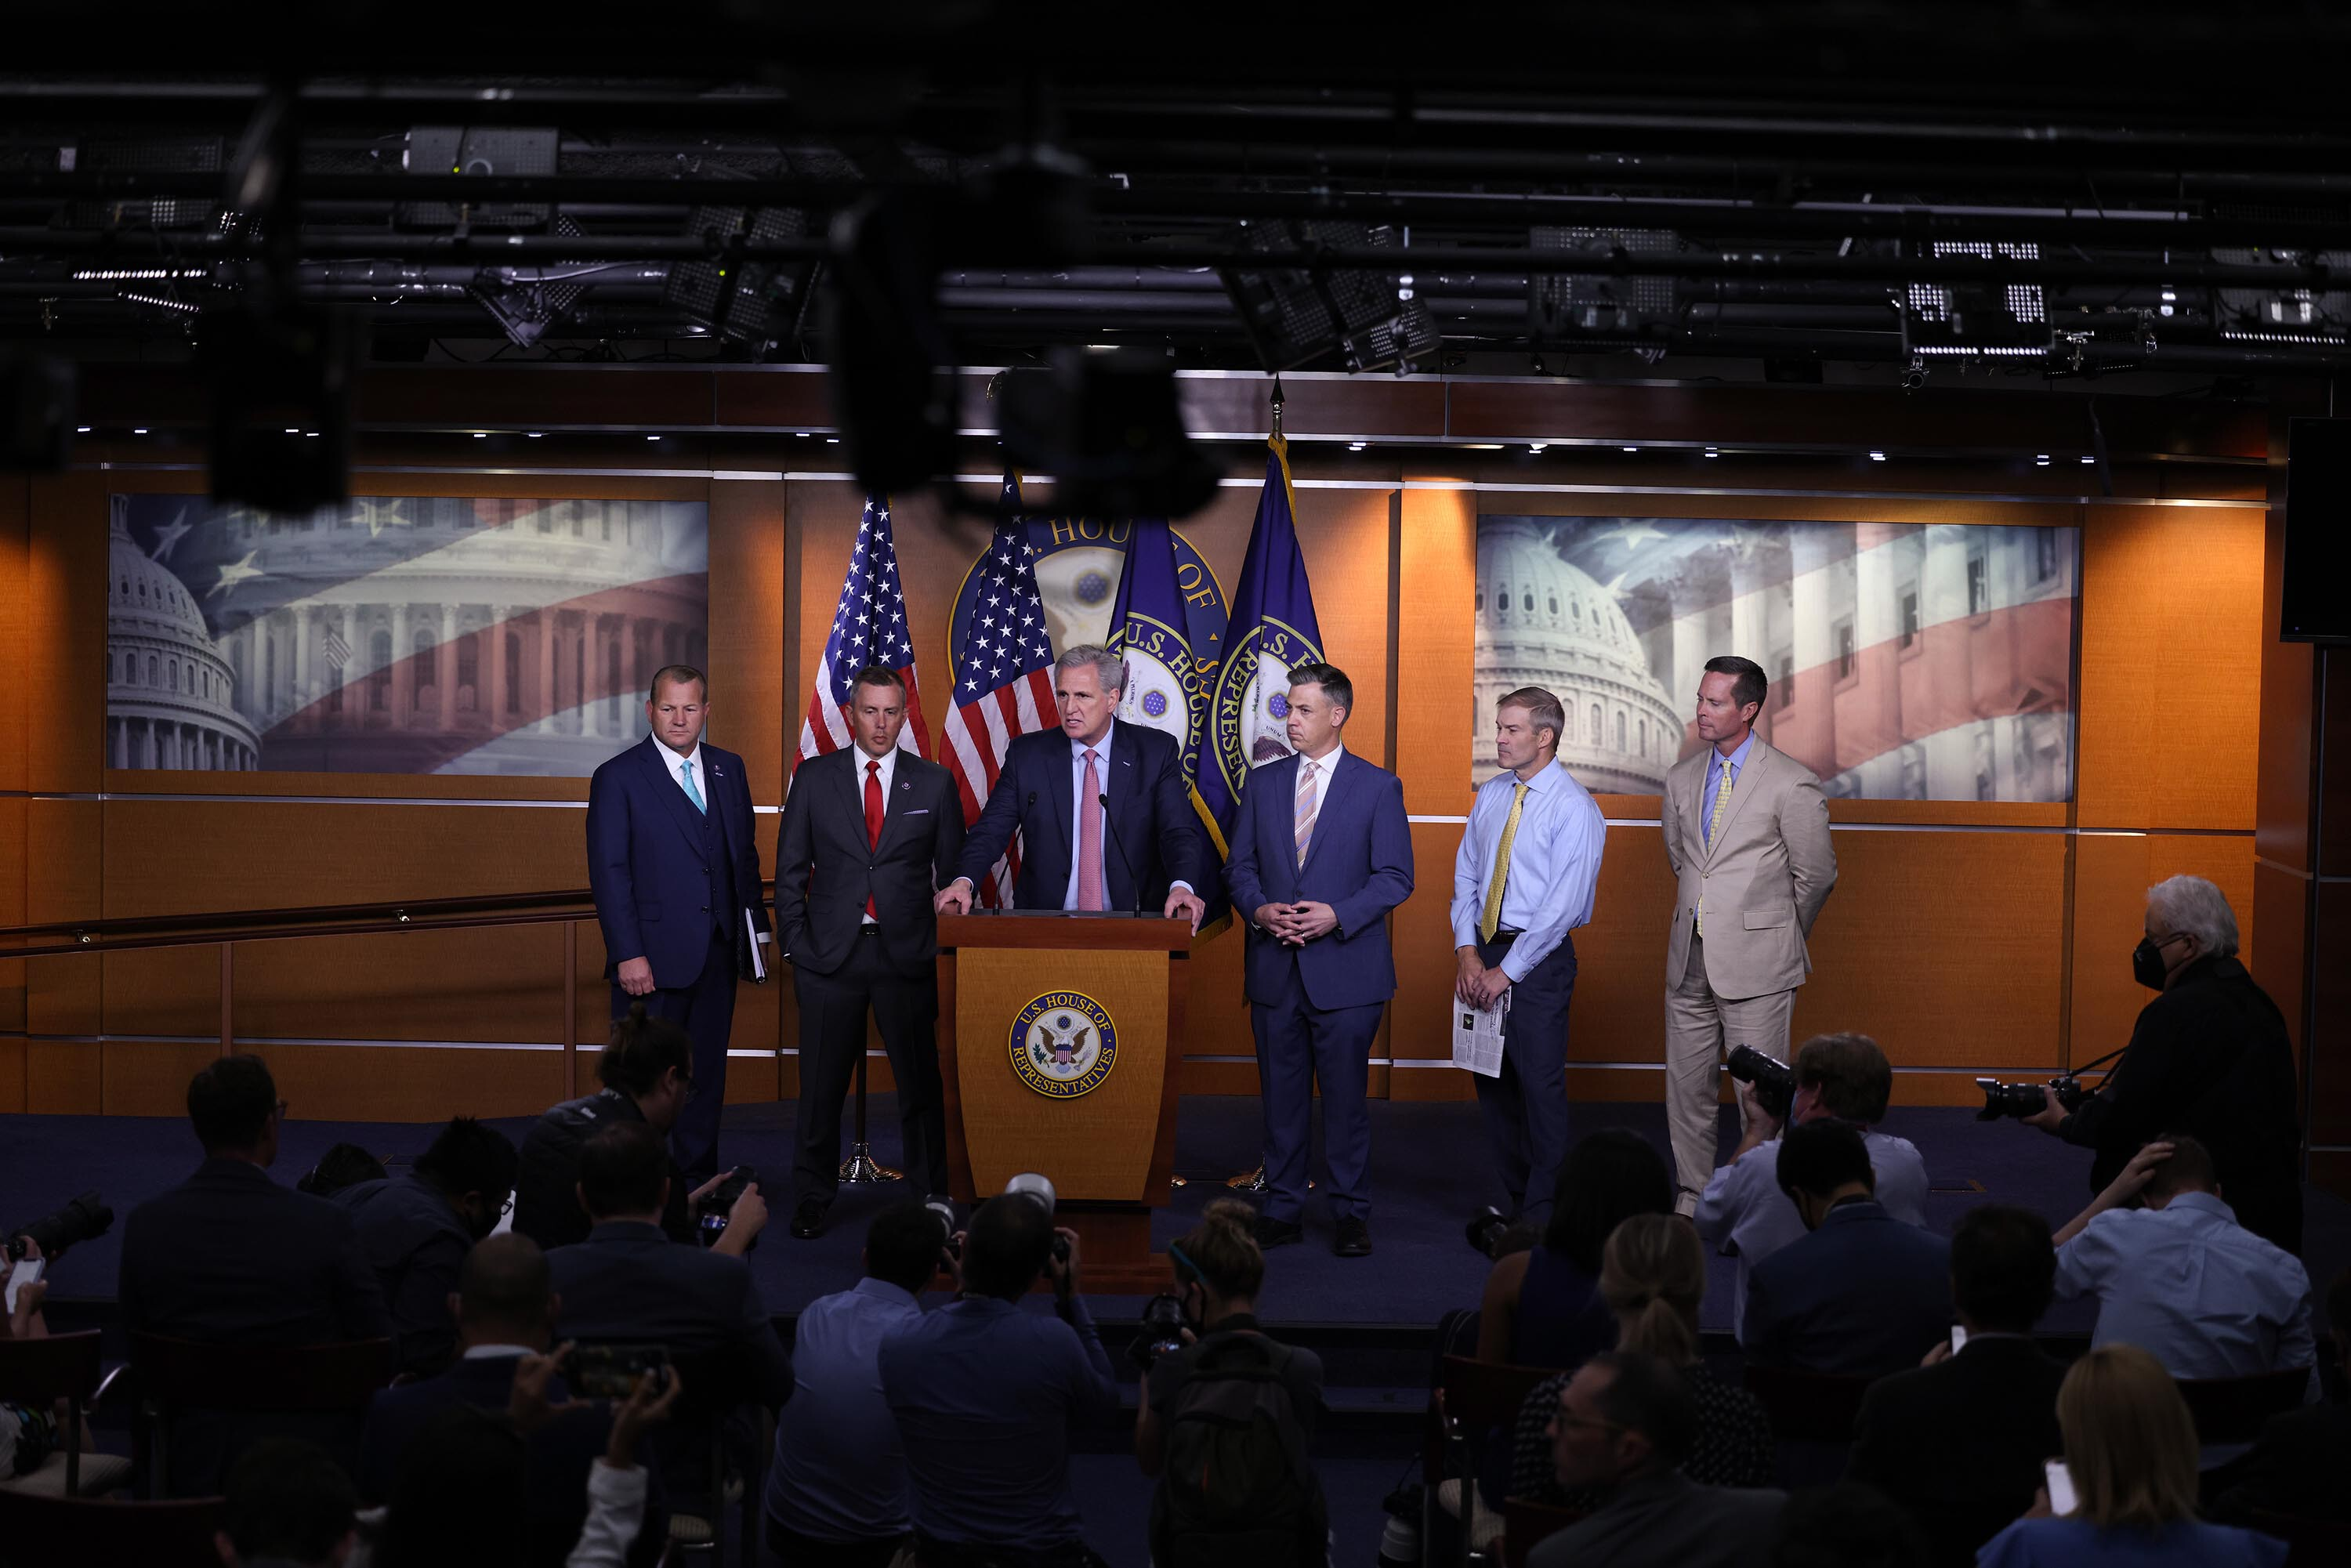 Republicans attempt to undermine and distract from first 1/6 select committee hearing